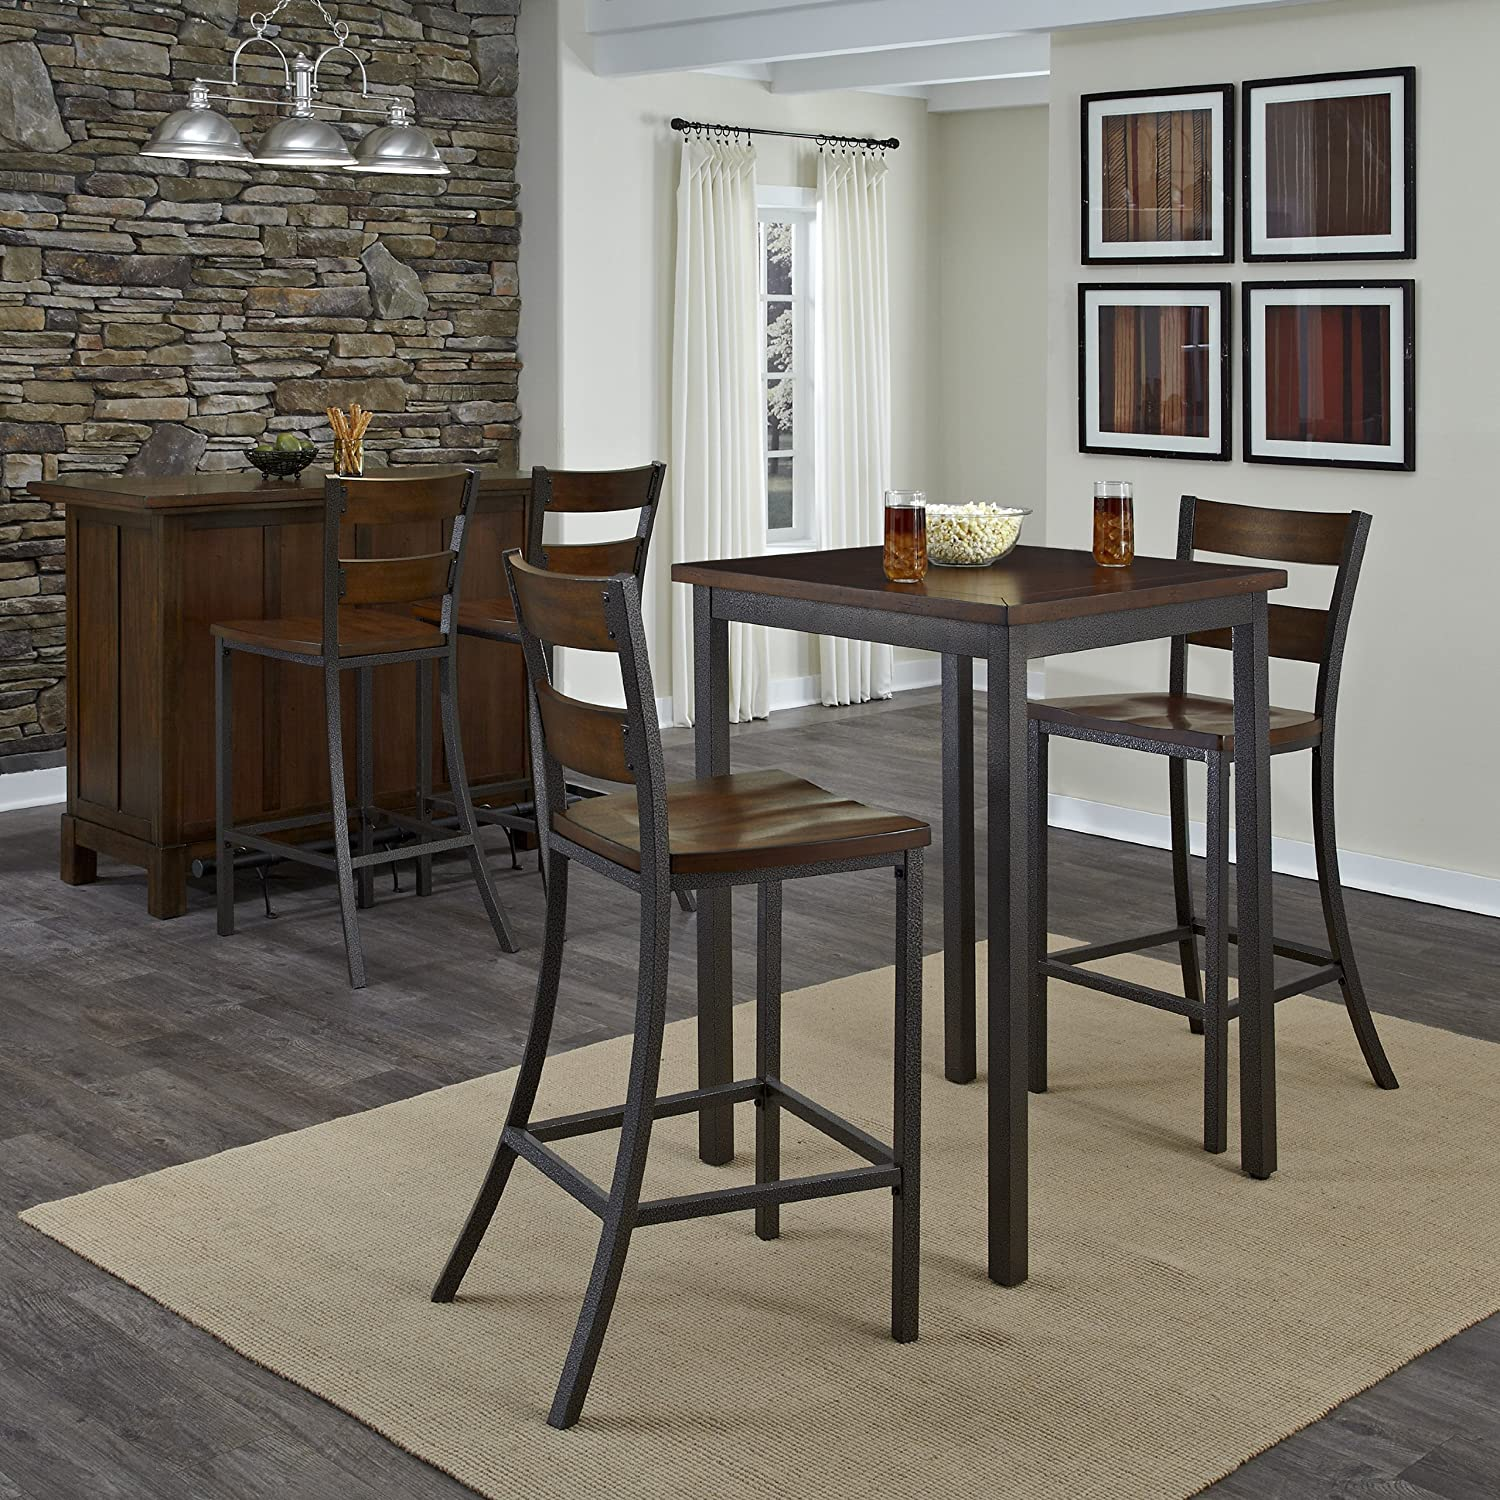 amazoncom home styles  cabin creek bistro table kitchen  dining. amazoncom home styles  cabin creek bistro table kitchen